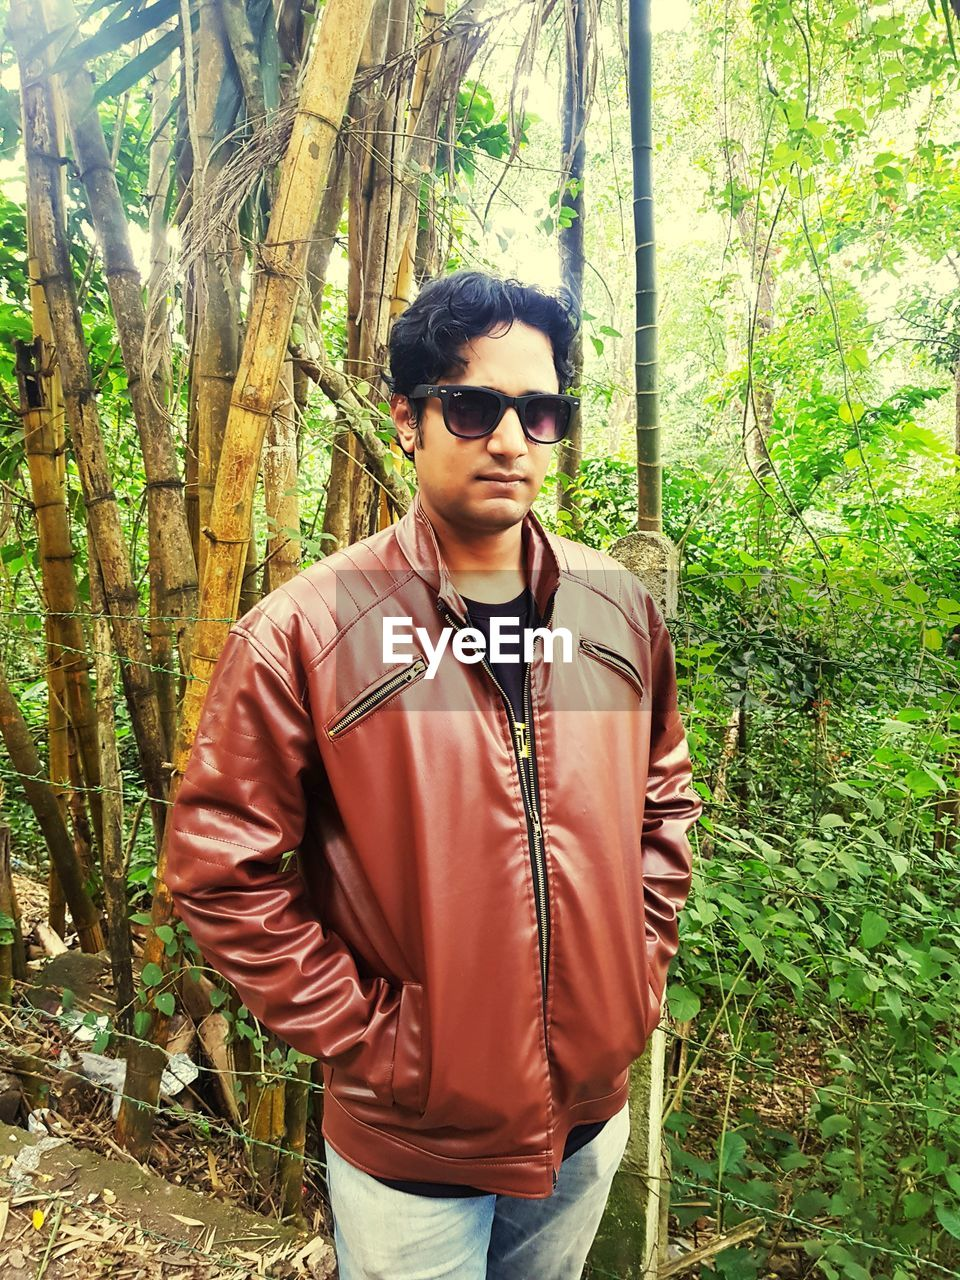 standing, glasses, sunglasses, tree, fashion, young men, one person, real people, plant, young adult, lifestyles, front view, leisure activity, casual clothing, land, forest, day, clothing, nature, outdoors